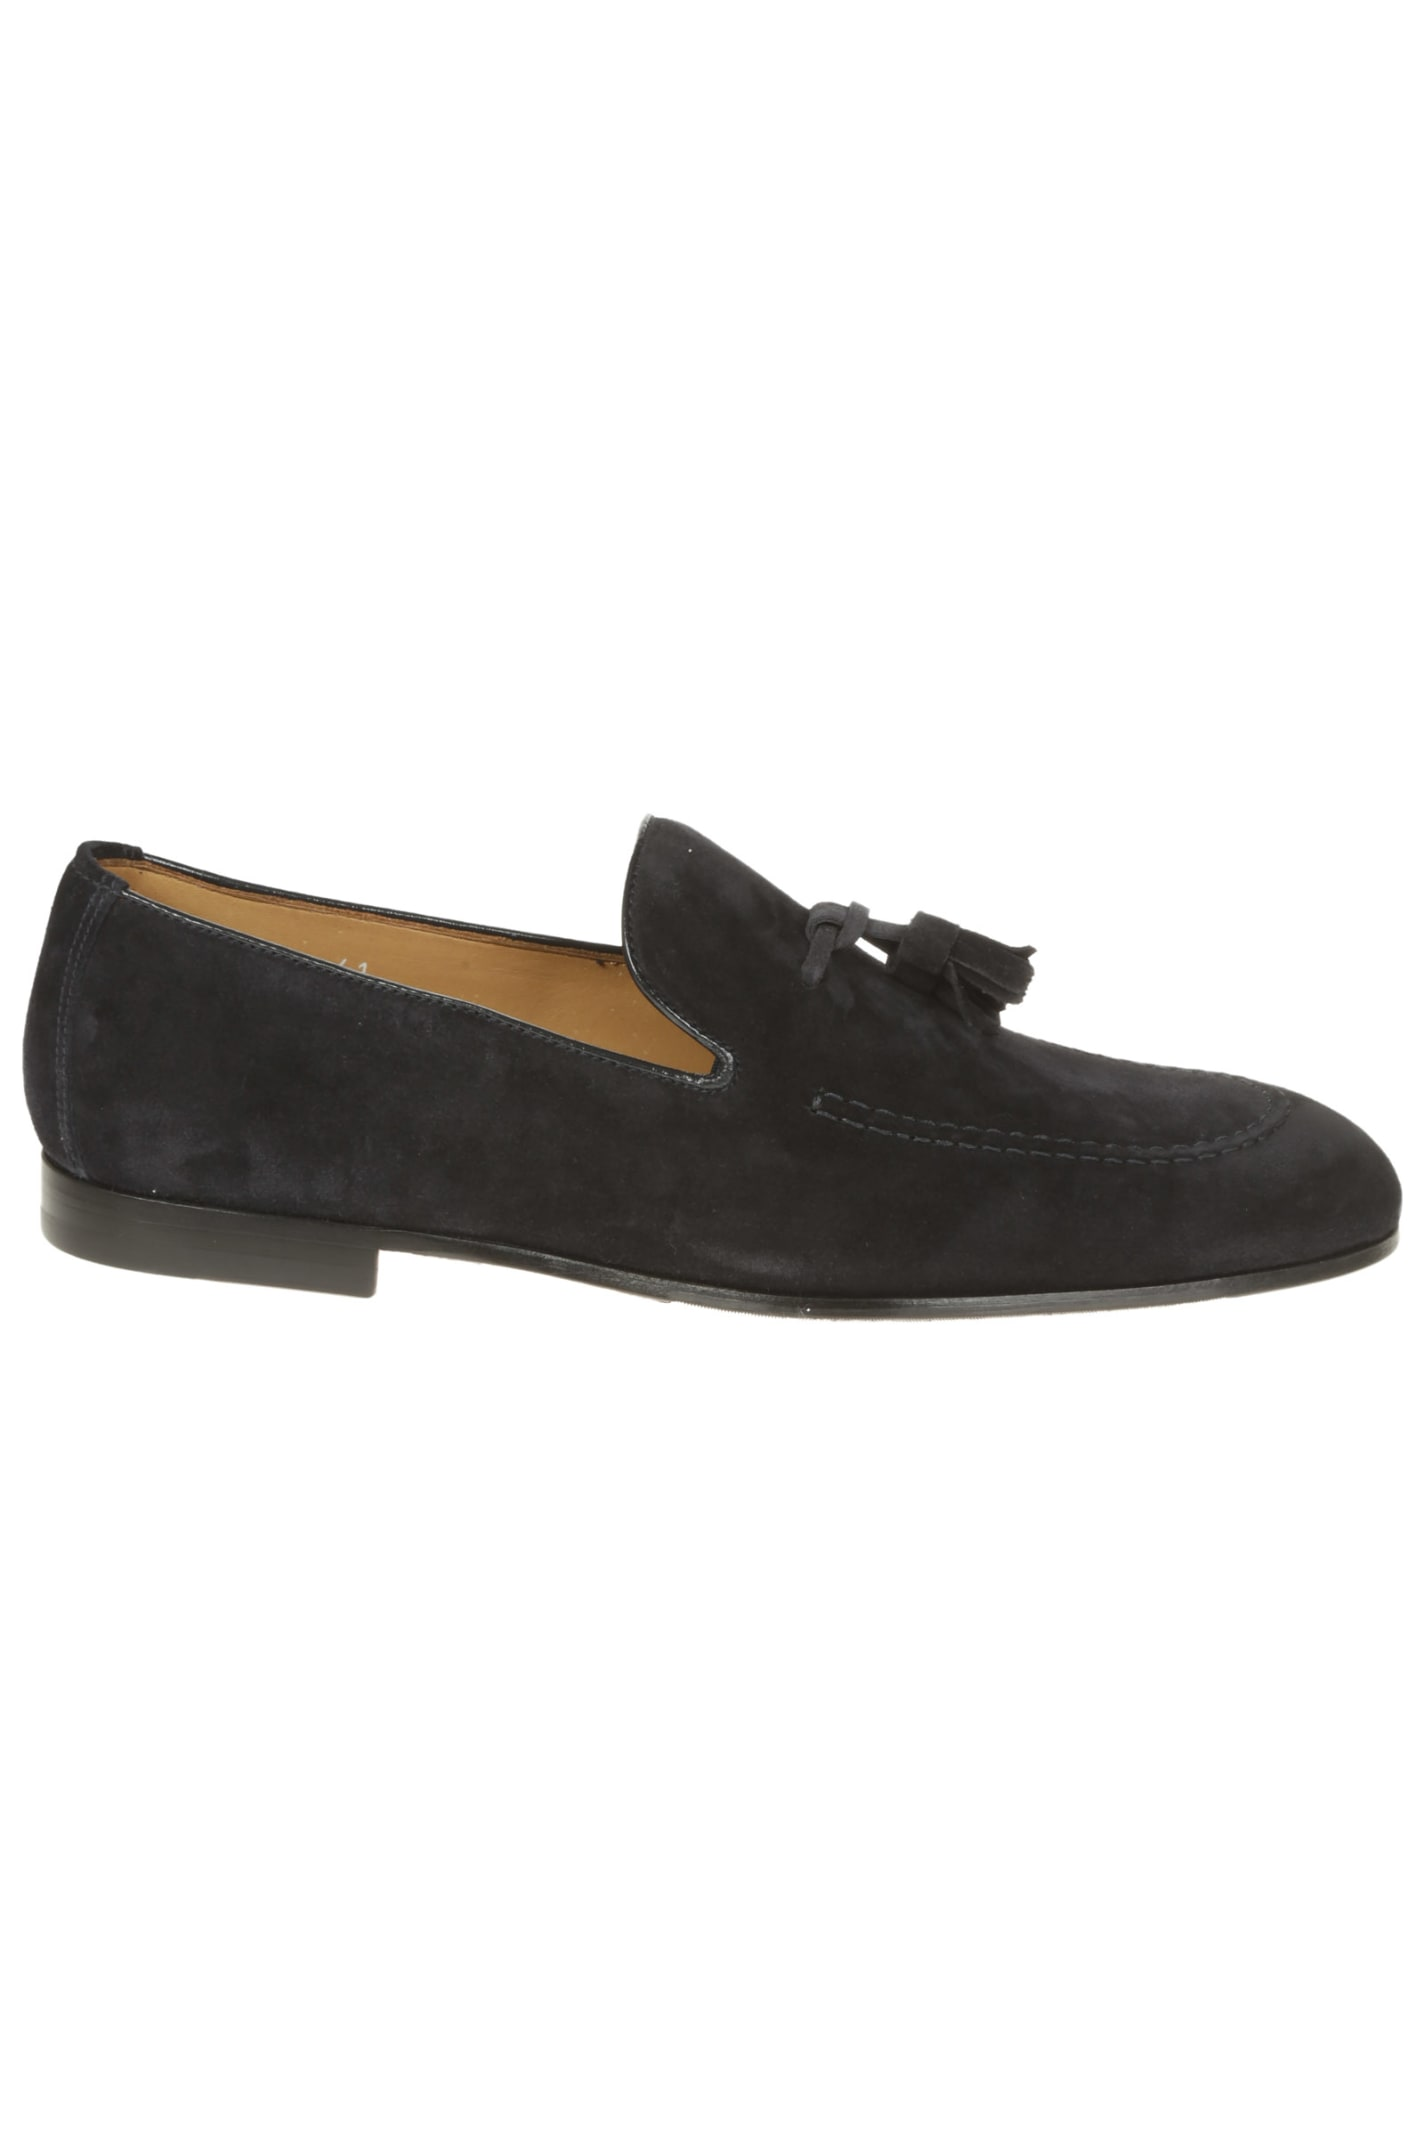 Doucals Tassel Detail Loafers